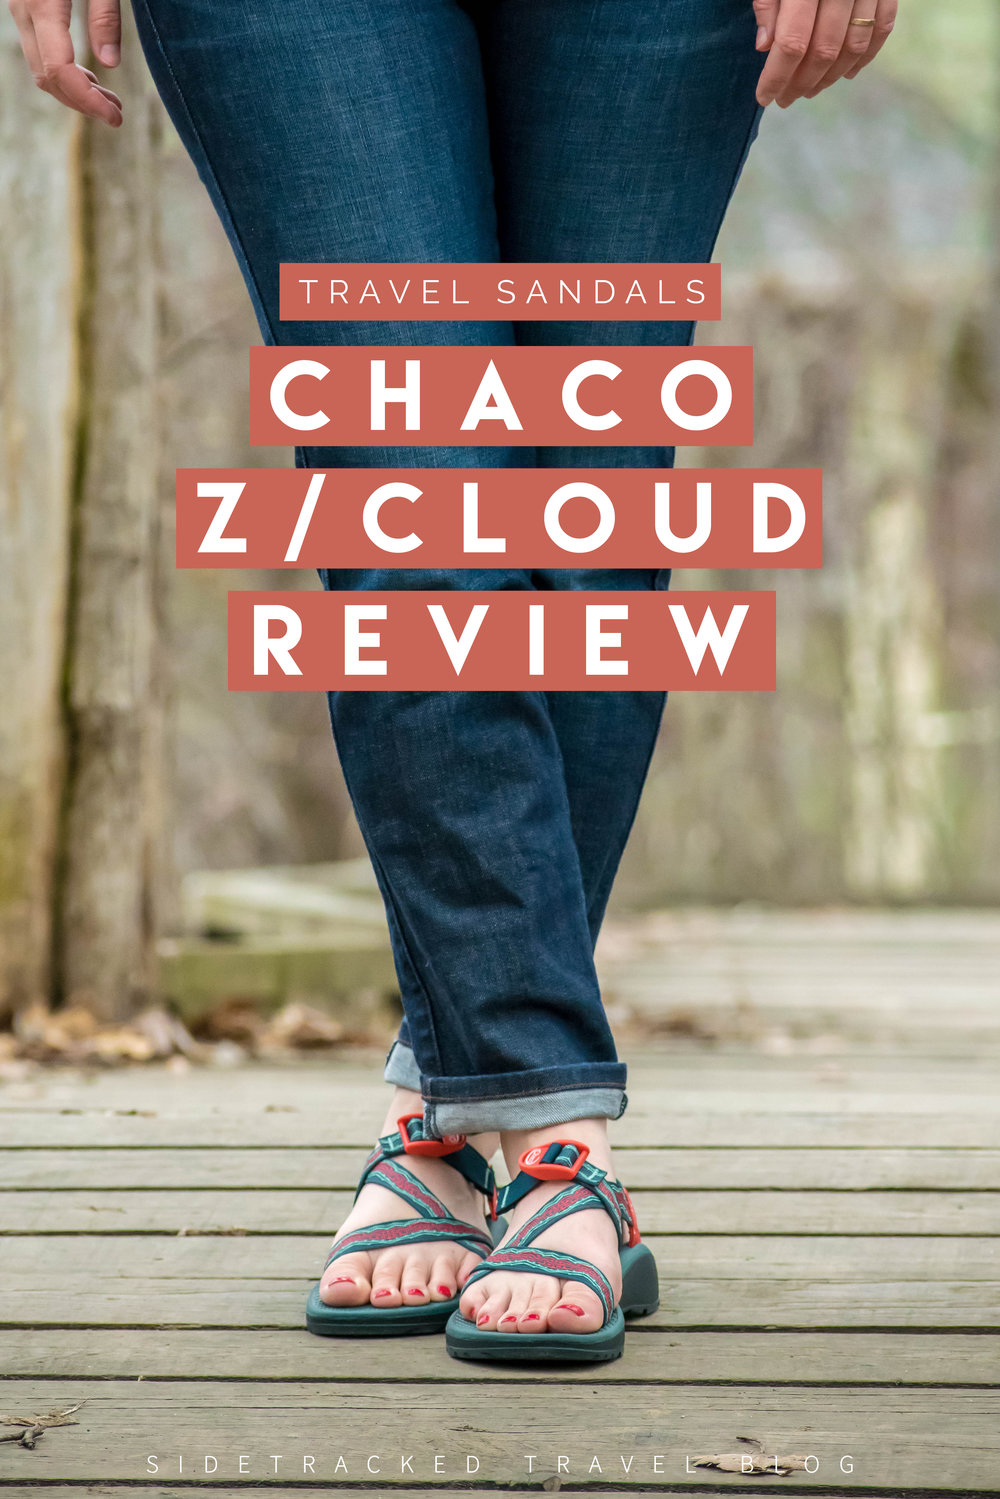 I am currently the proud owner of a pair of the best-selling Z/Cloud sandals by Chaco. They sent me this pair to review for you, and after putting them to the test for a few weeks, I'm eager to share more.